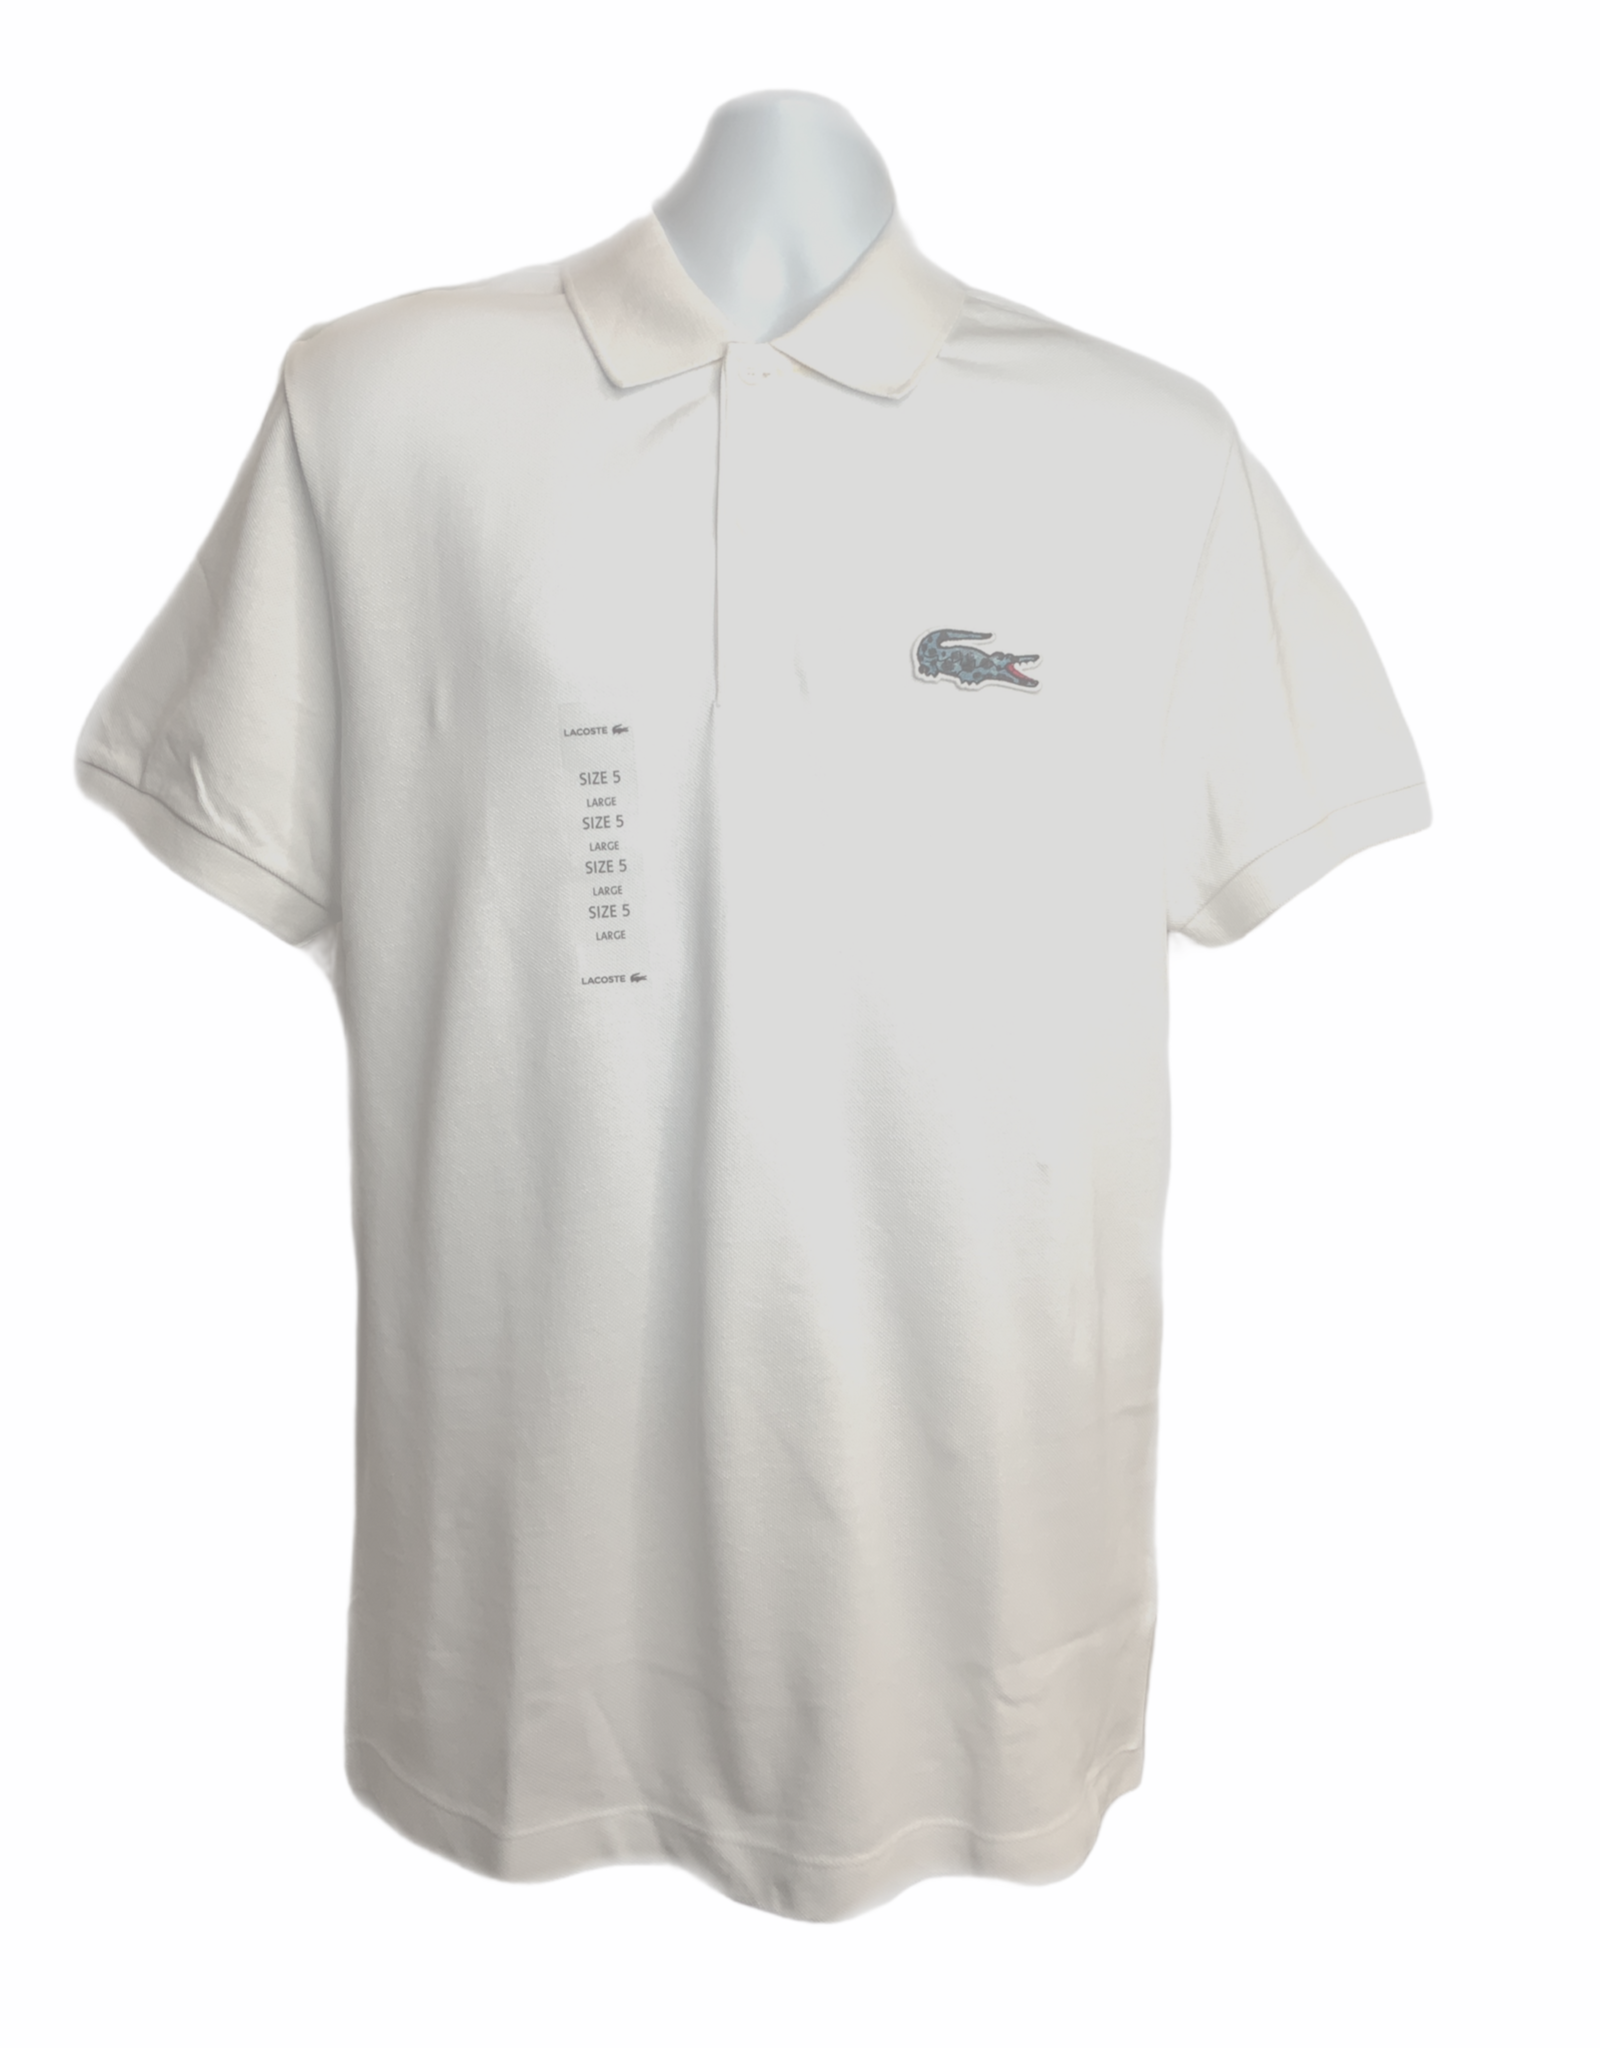 Lacoste Lacoste Polo Shirt National Geographic